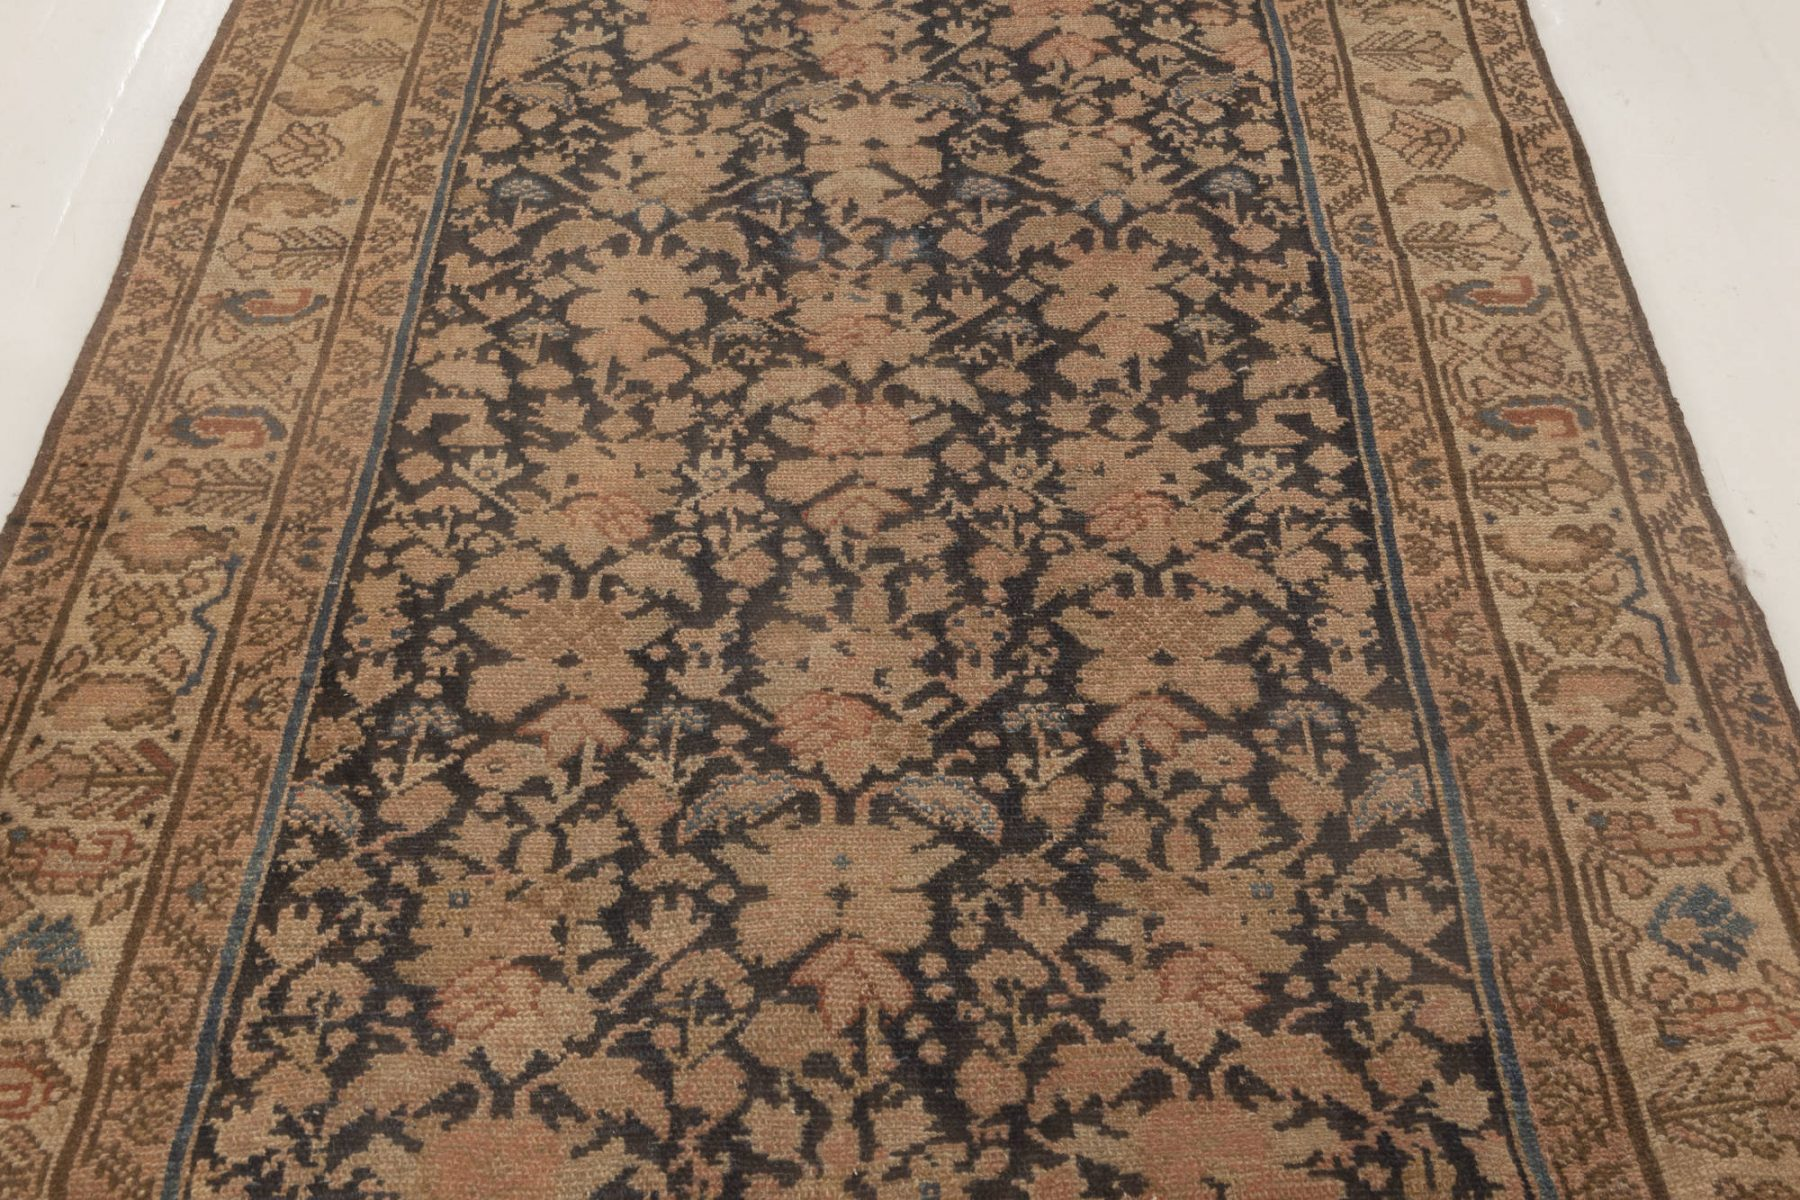 Antique Persian Malayer Runner Rug BB3868